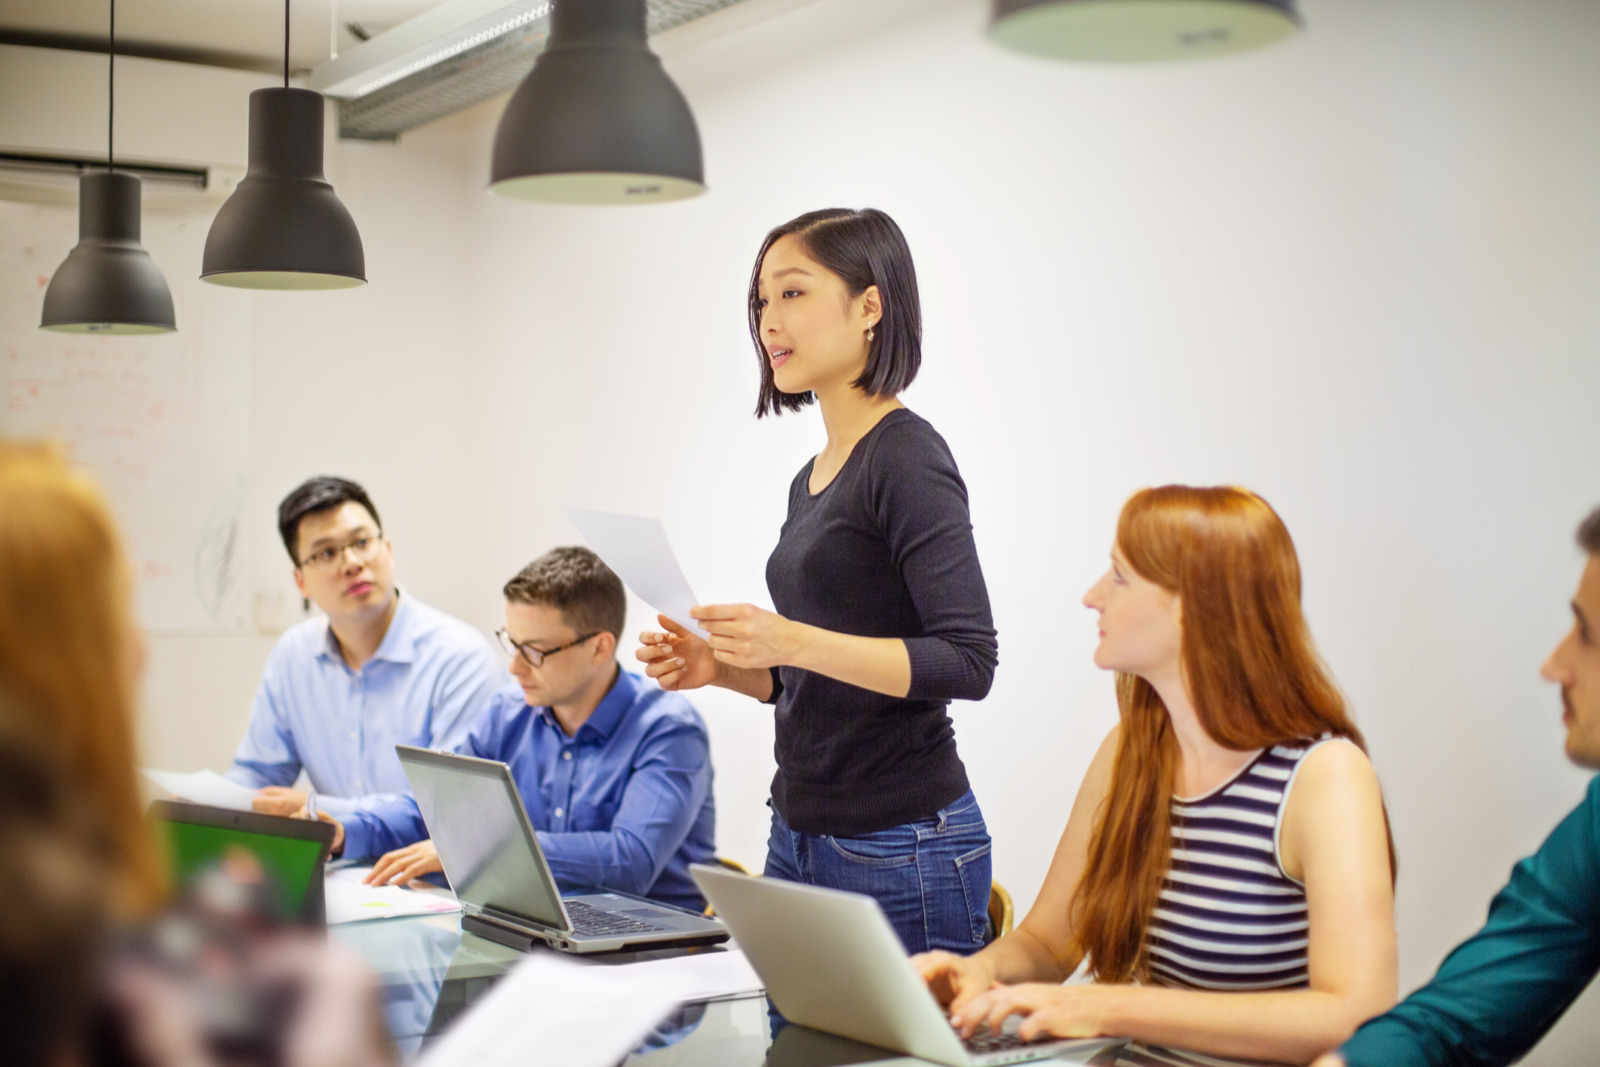 How Leaders Can Encourage Representation in the Workplace